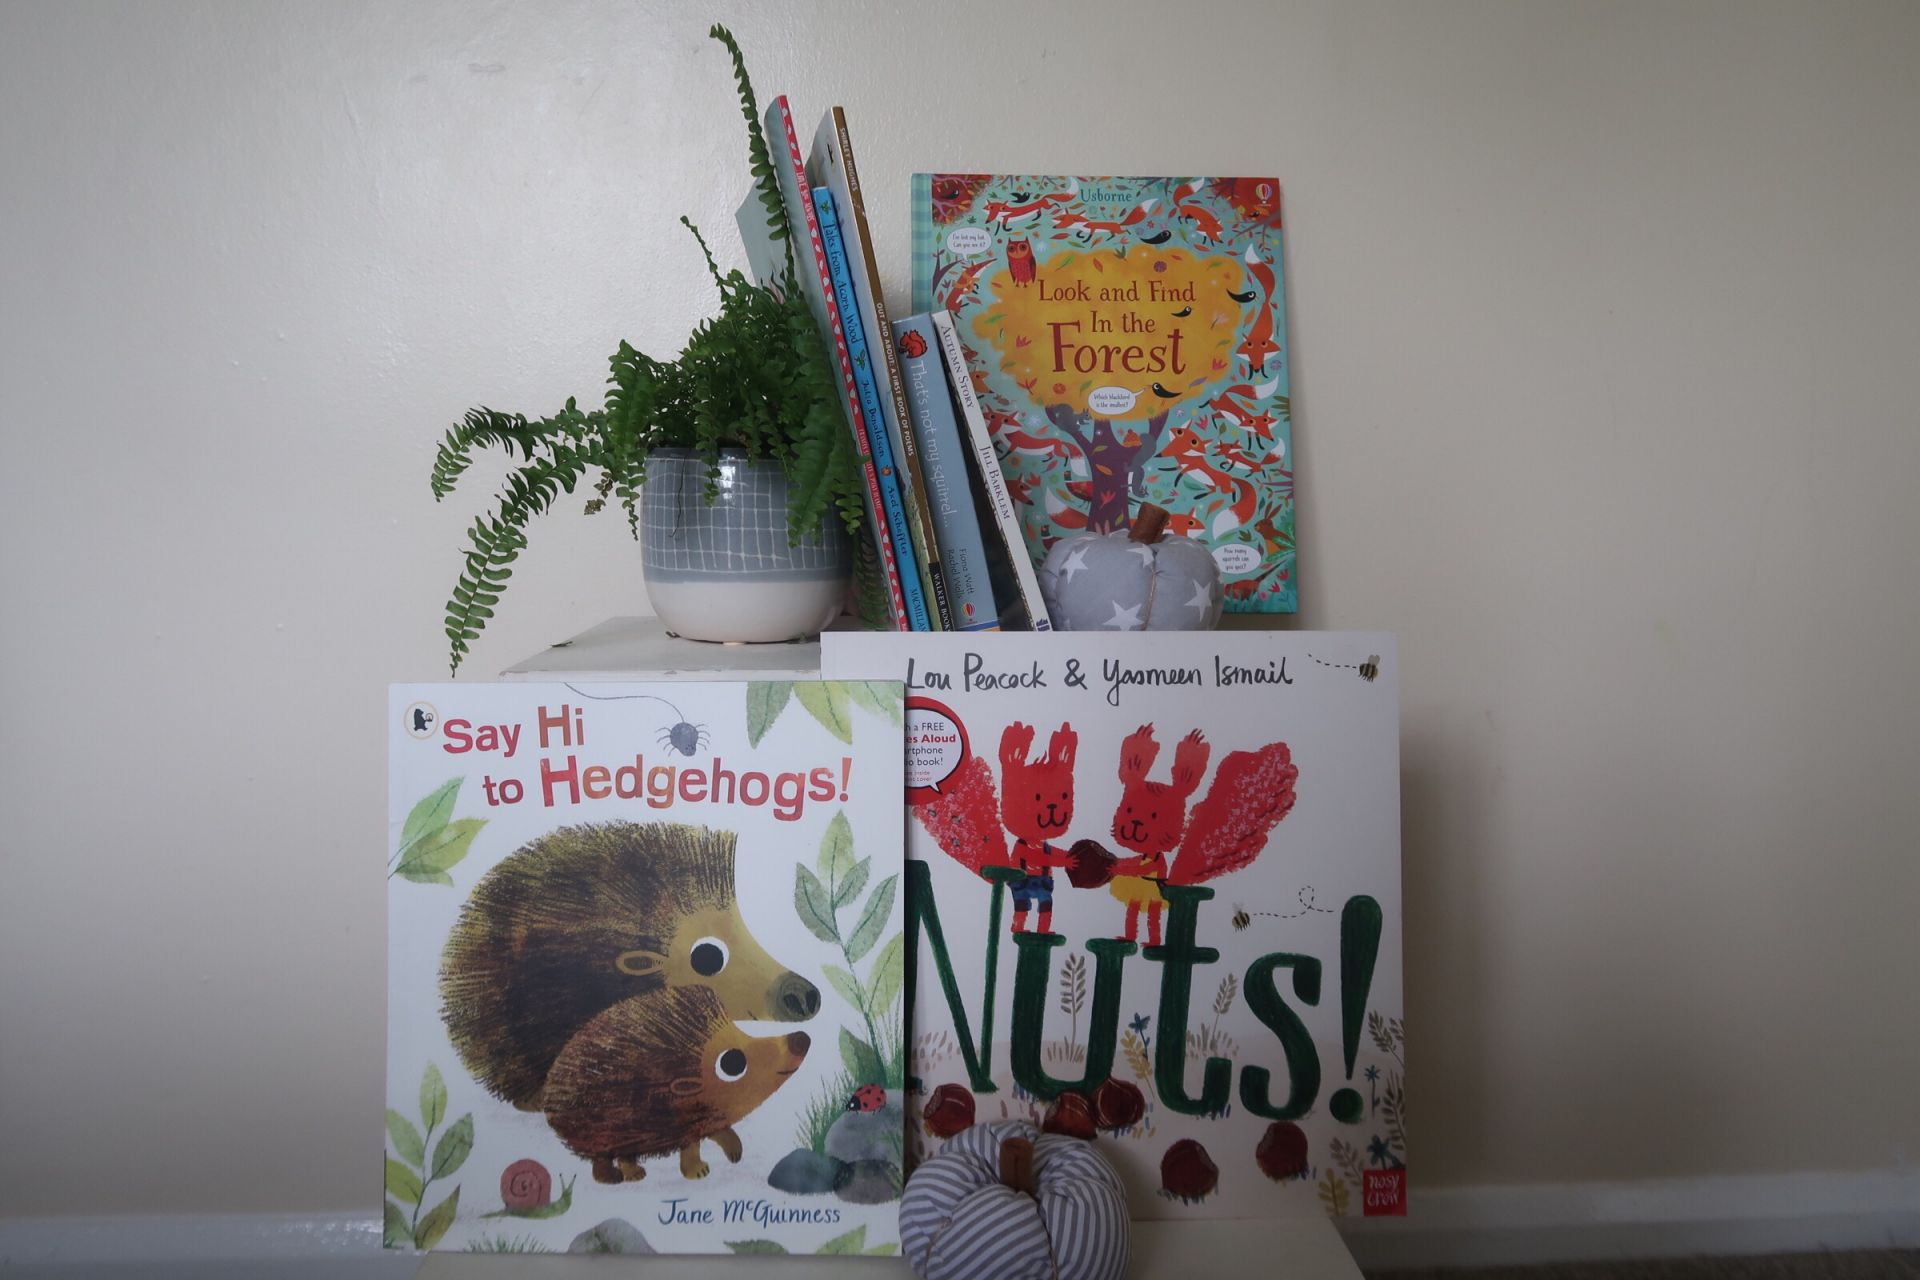 A book shelf and plant with kids books on